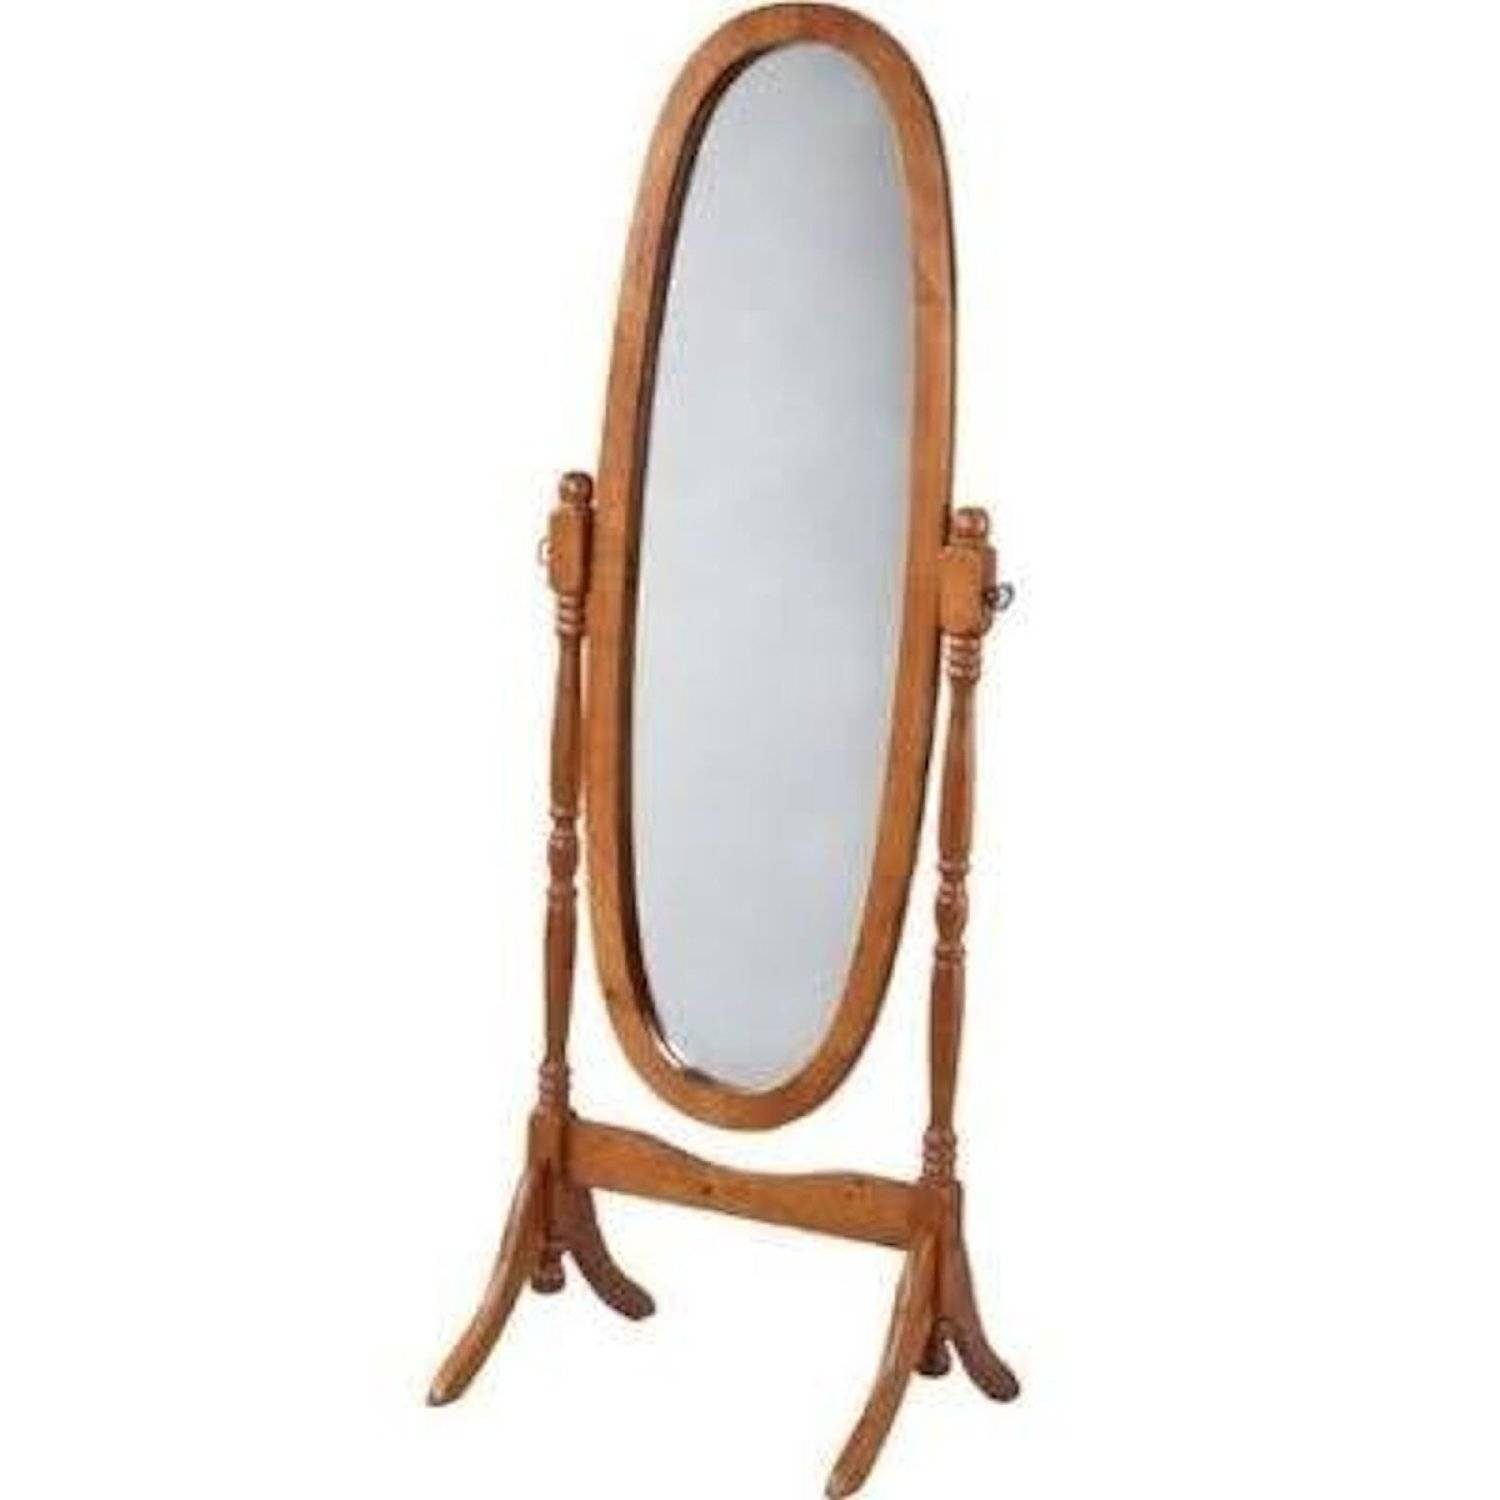 Homeware: Oval Full Length Standing Mirror | Large Floor Mirrors Regarding Oval Freestanding Mirrors (View 21 of 25)